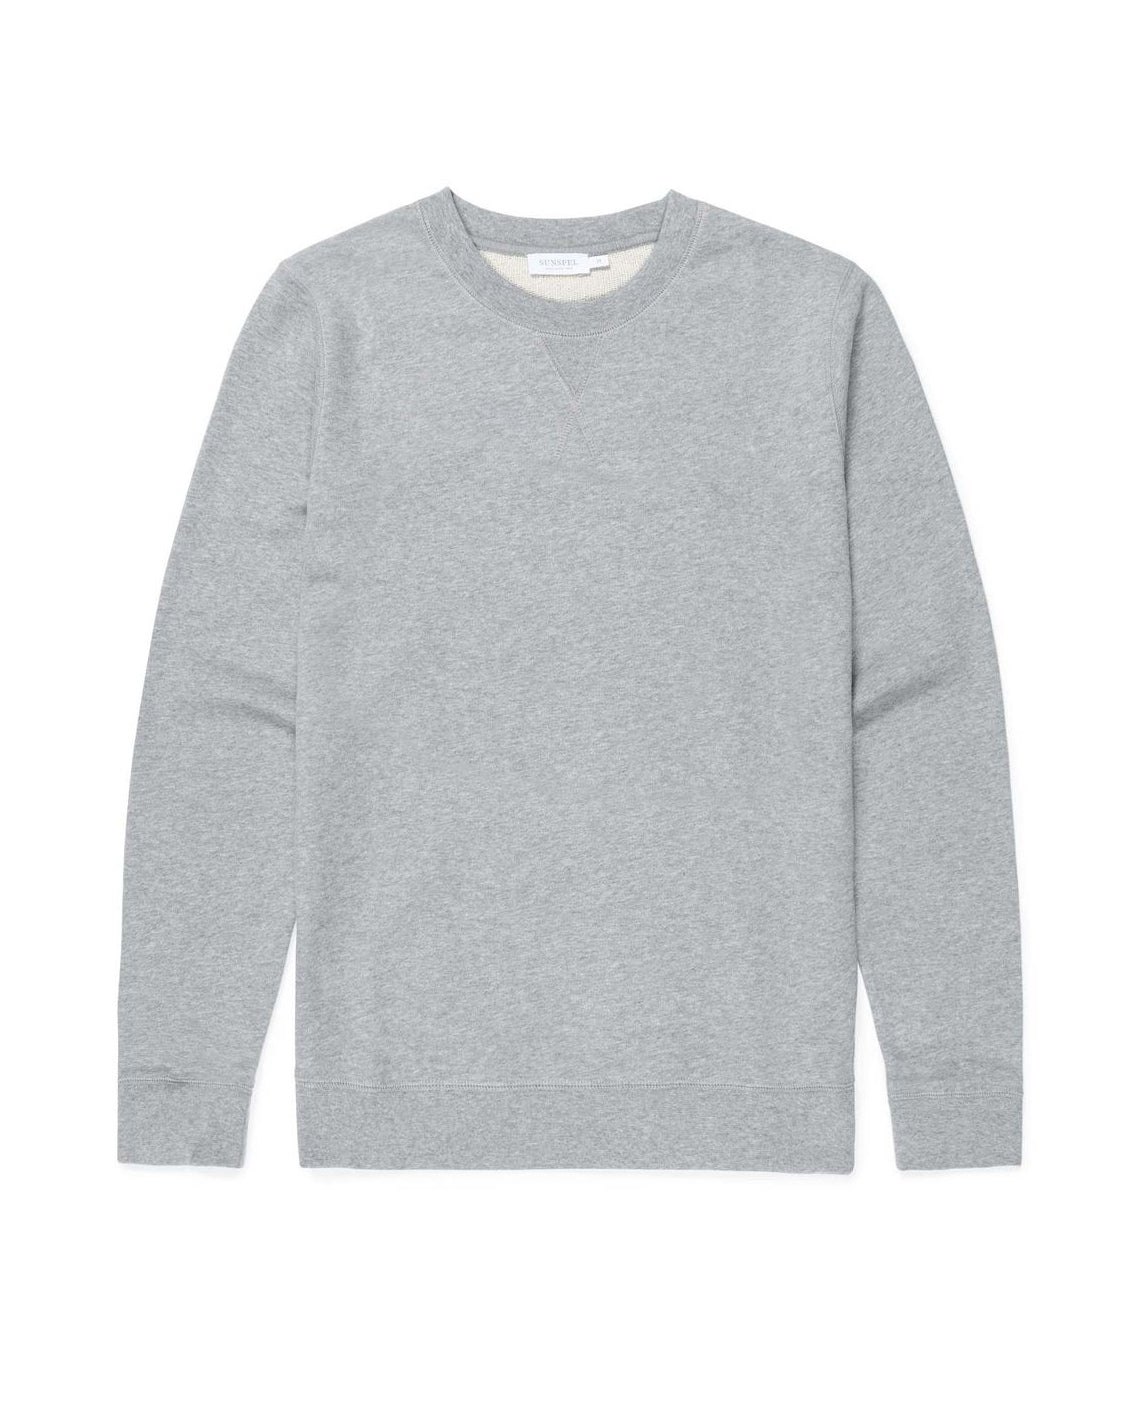 Cotton Loopback Sweatshirt - Grey Melange